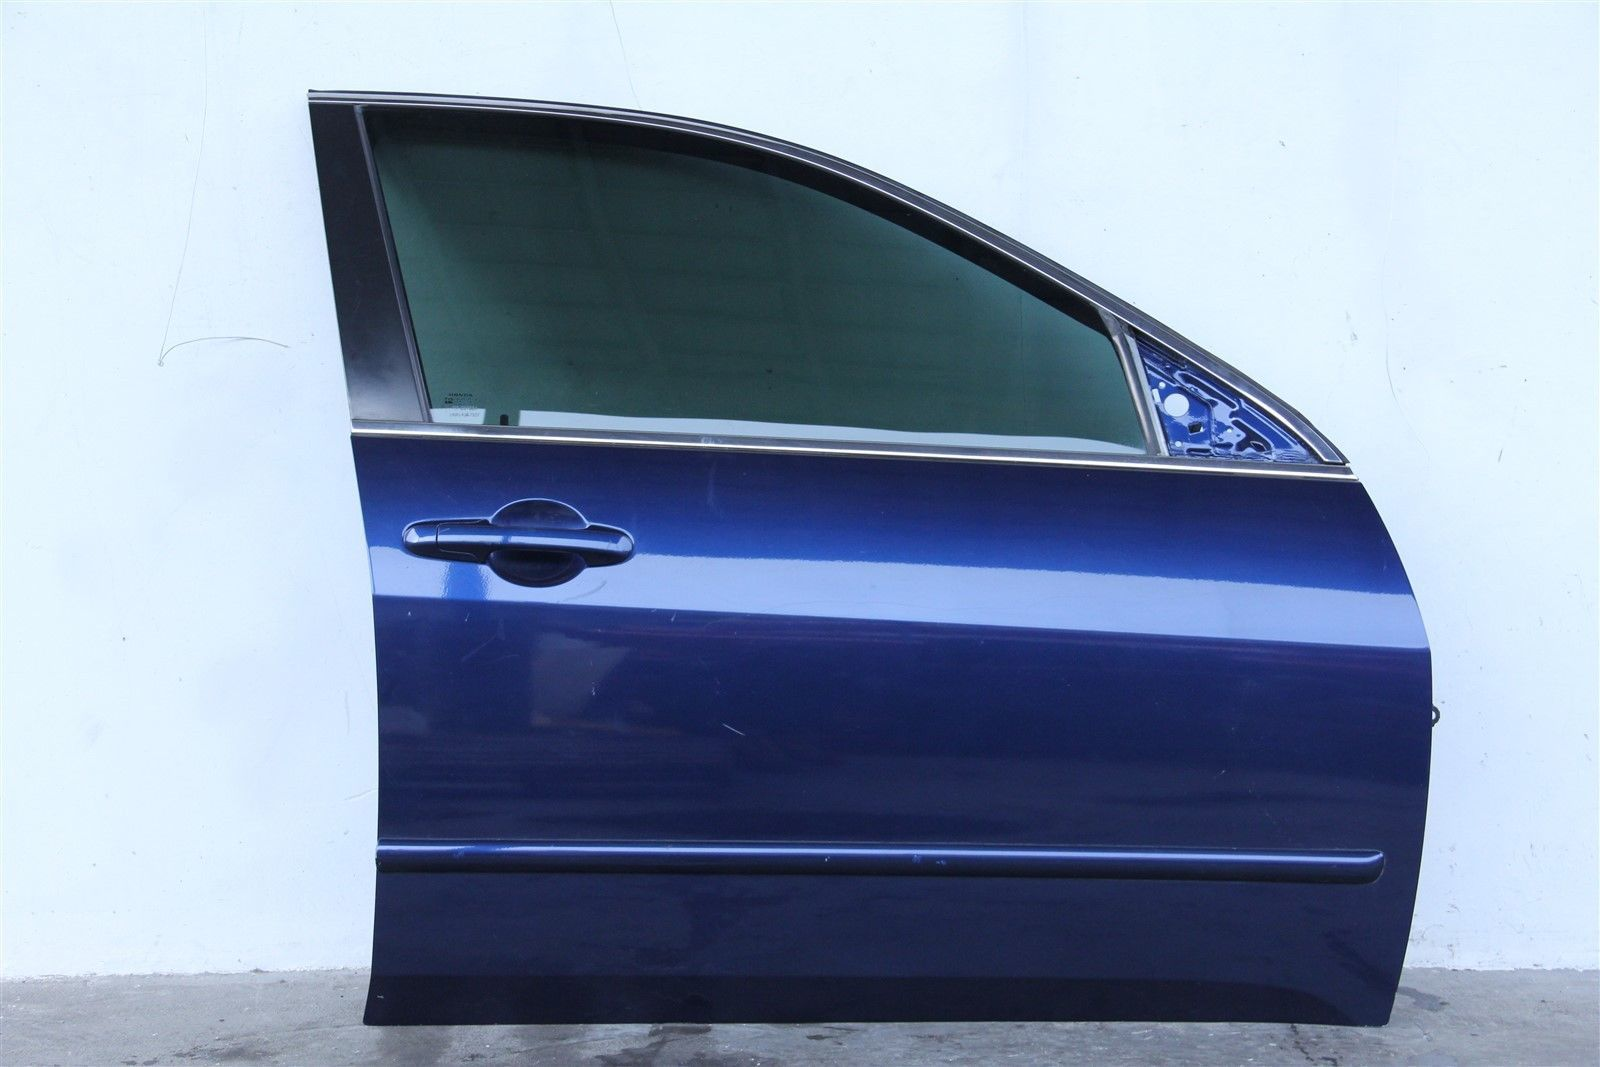 Honda Accord Sedan 03 04 05 06 07 Front Door, Right Side Electric, Blue